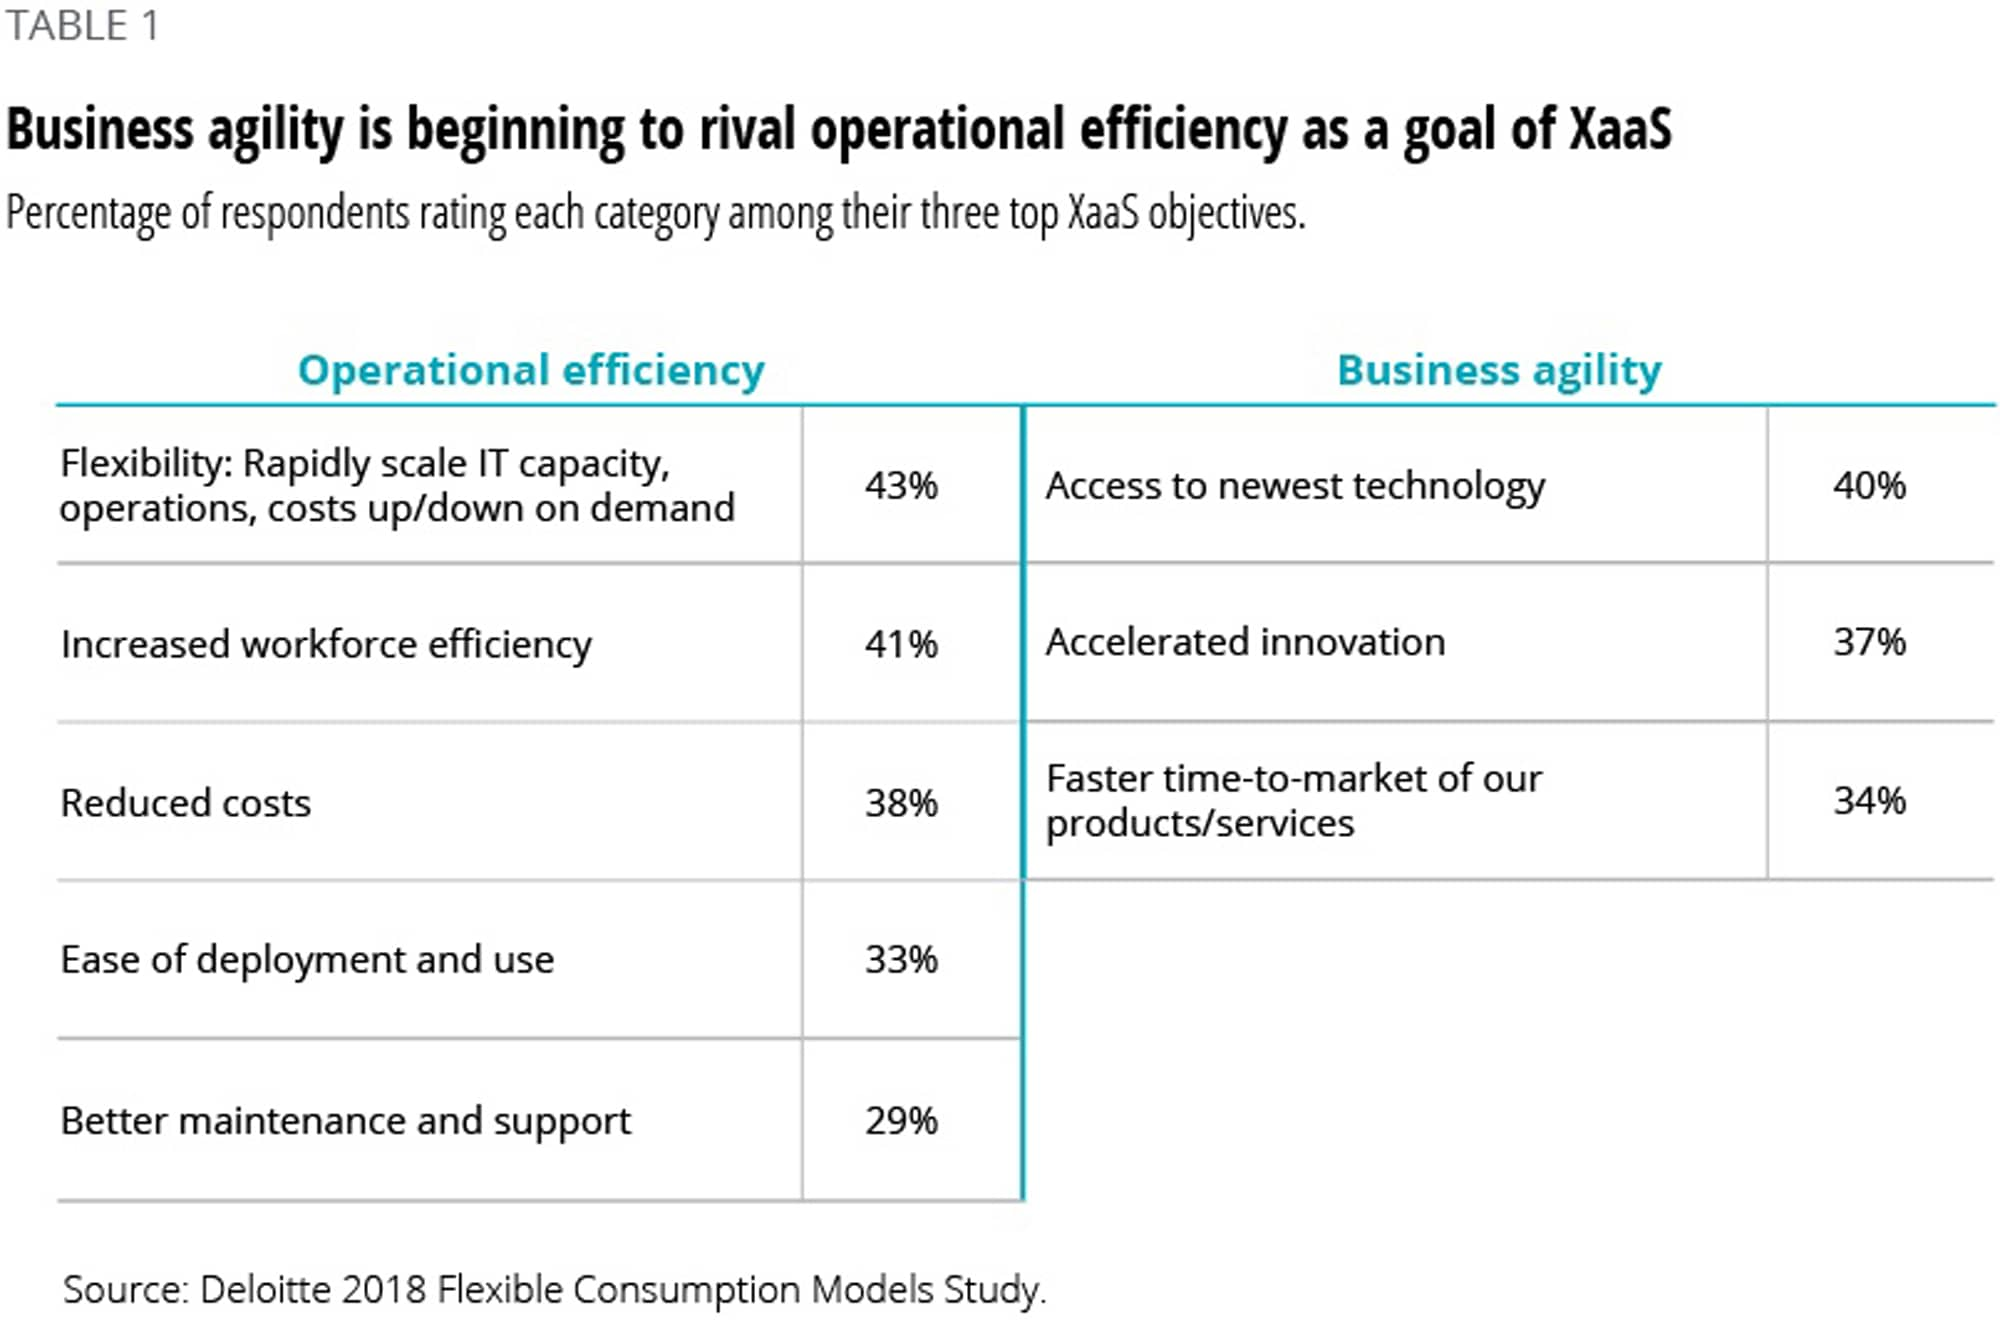 Business agility is beginning to rival operational efficiency as a goal of XaaS